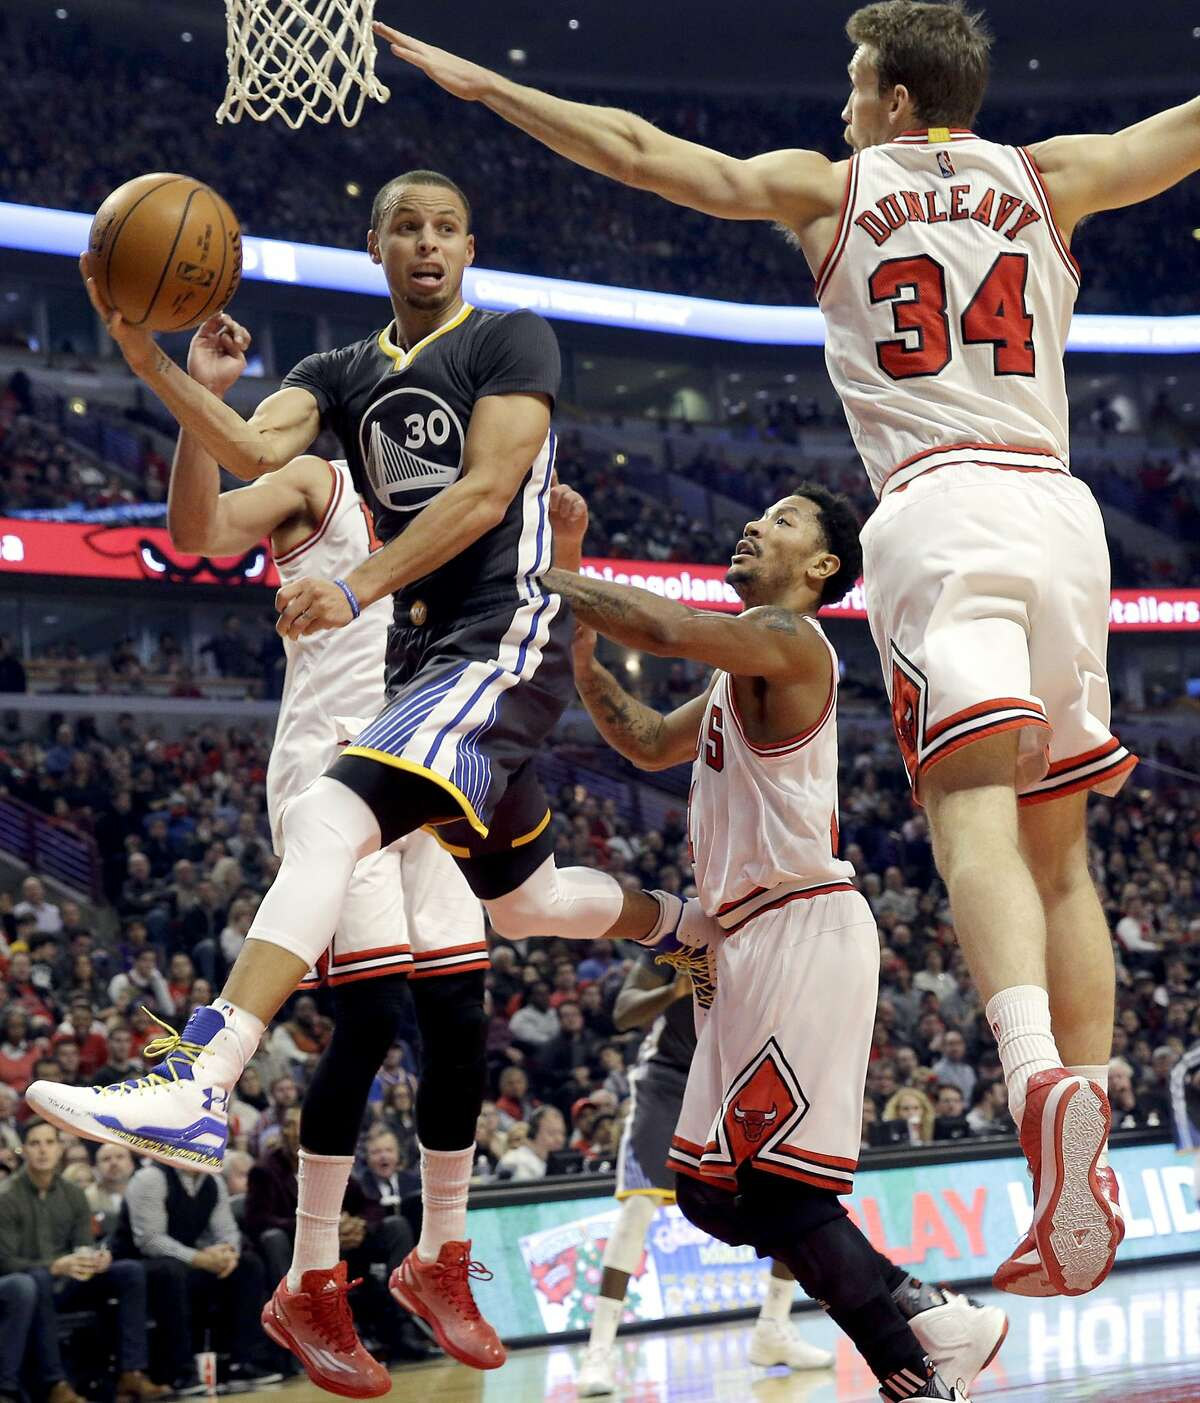 Golden State Warriors guard Stephen Curry (30) looks to pass against Chicago Bulls center/forward Joakim Noah (13), guard Derrick Rose (1) and guard/forward Mike Dunleavy (34) during the first half of an NBA basketball game in Chicago on Saturday, Dec. 6, 2014.